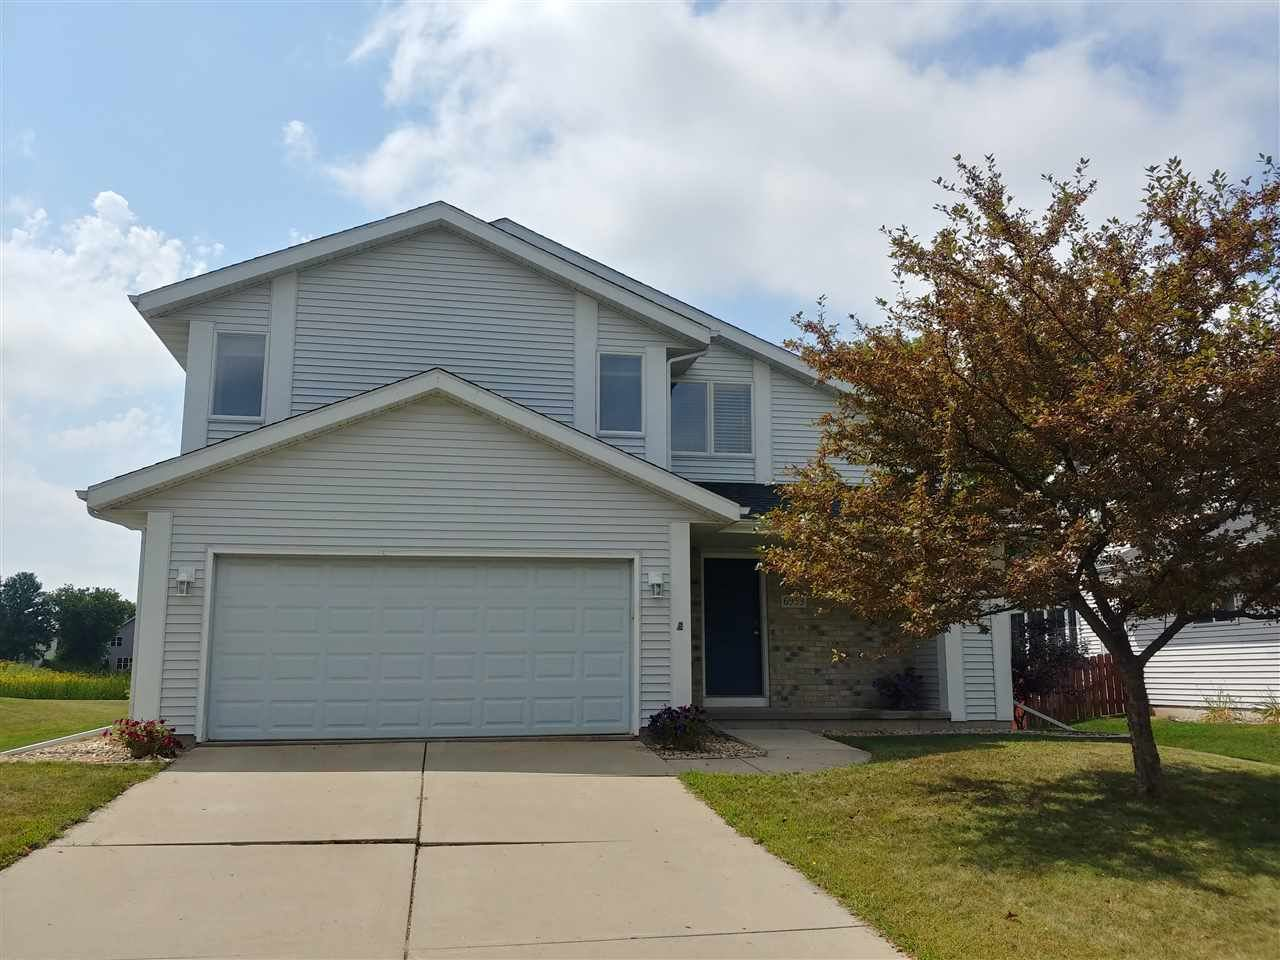 6933 ROCKSTREAM DR, Madison, WI 53719 - #: 1890942